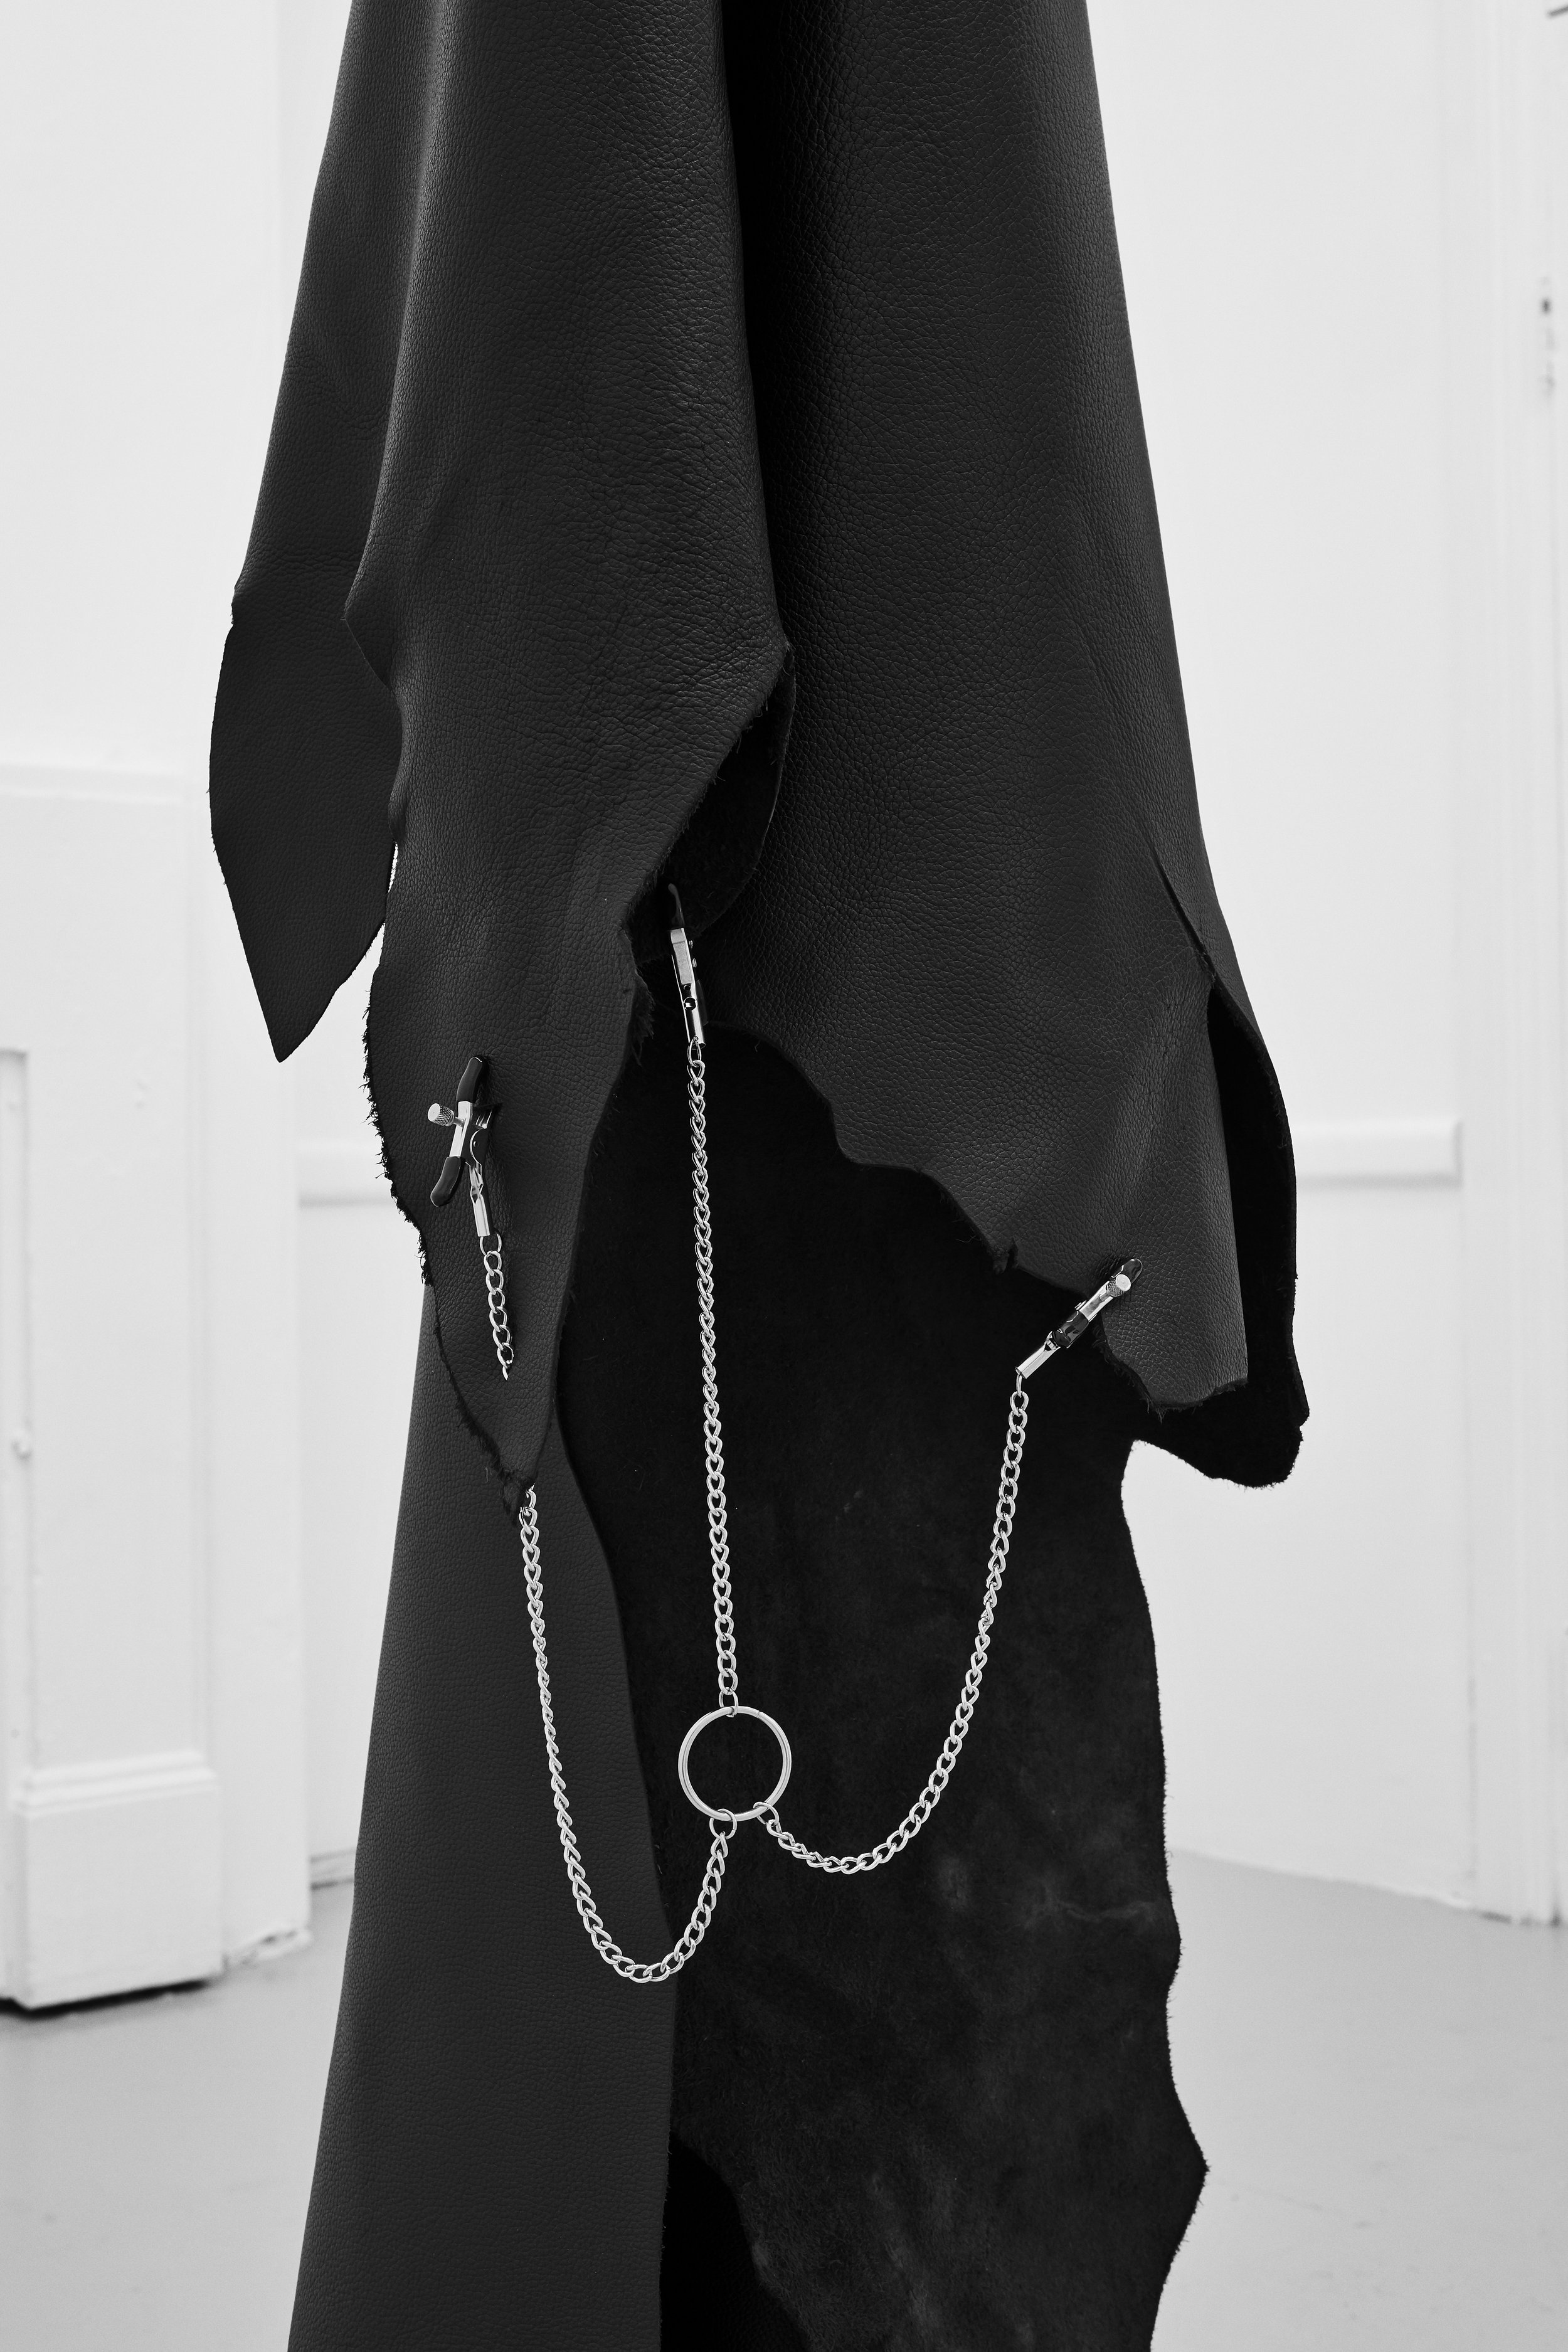 Untitled #5  from the series  Holding my breath , 2019, leather hide, chain, hook, cuffs, clamps, 350 x 60 x 60 cm